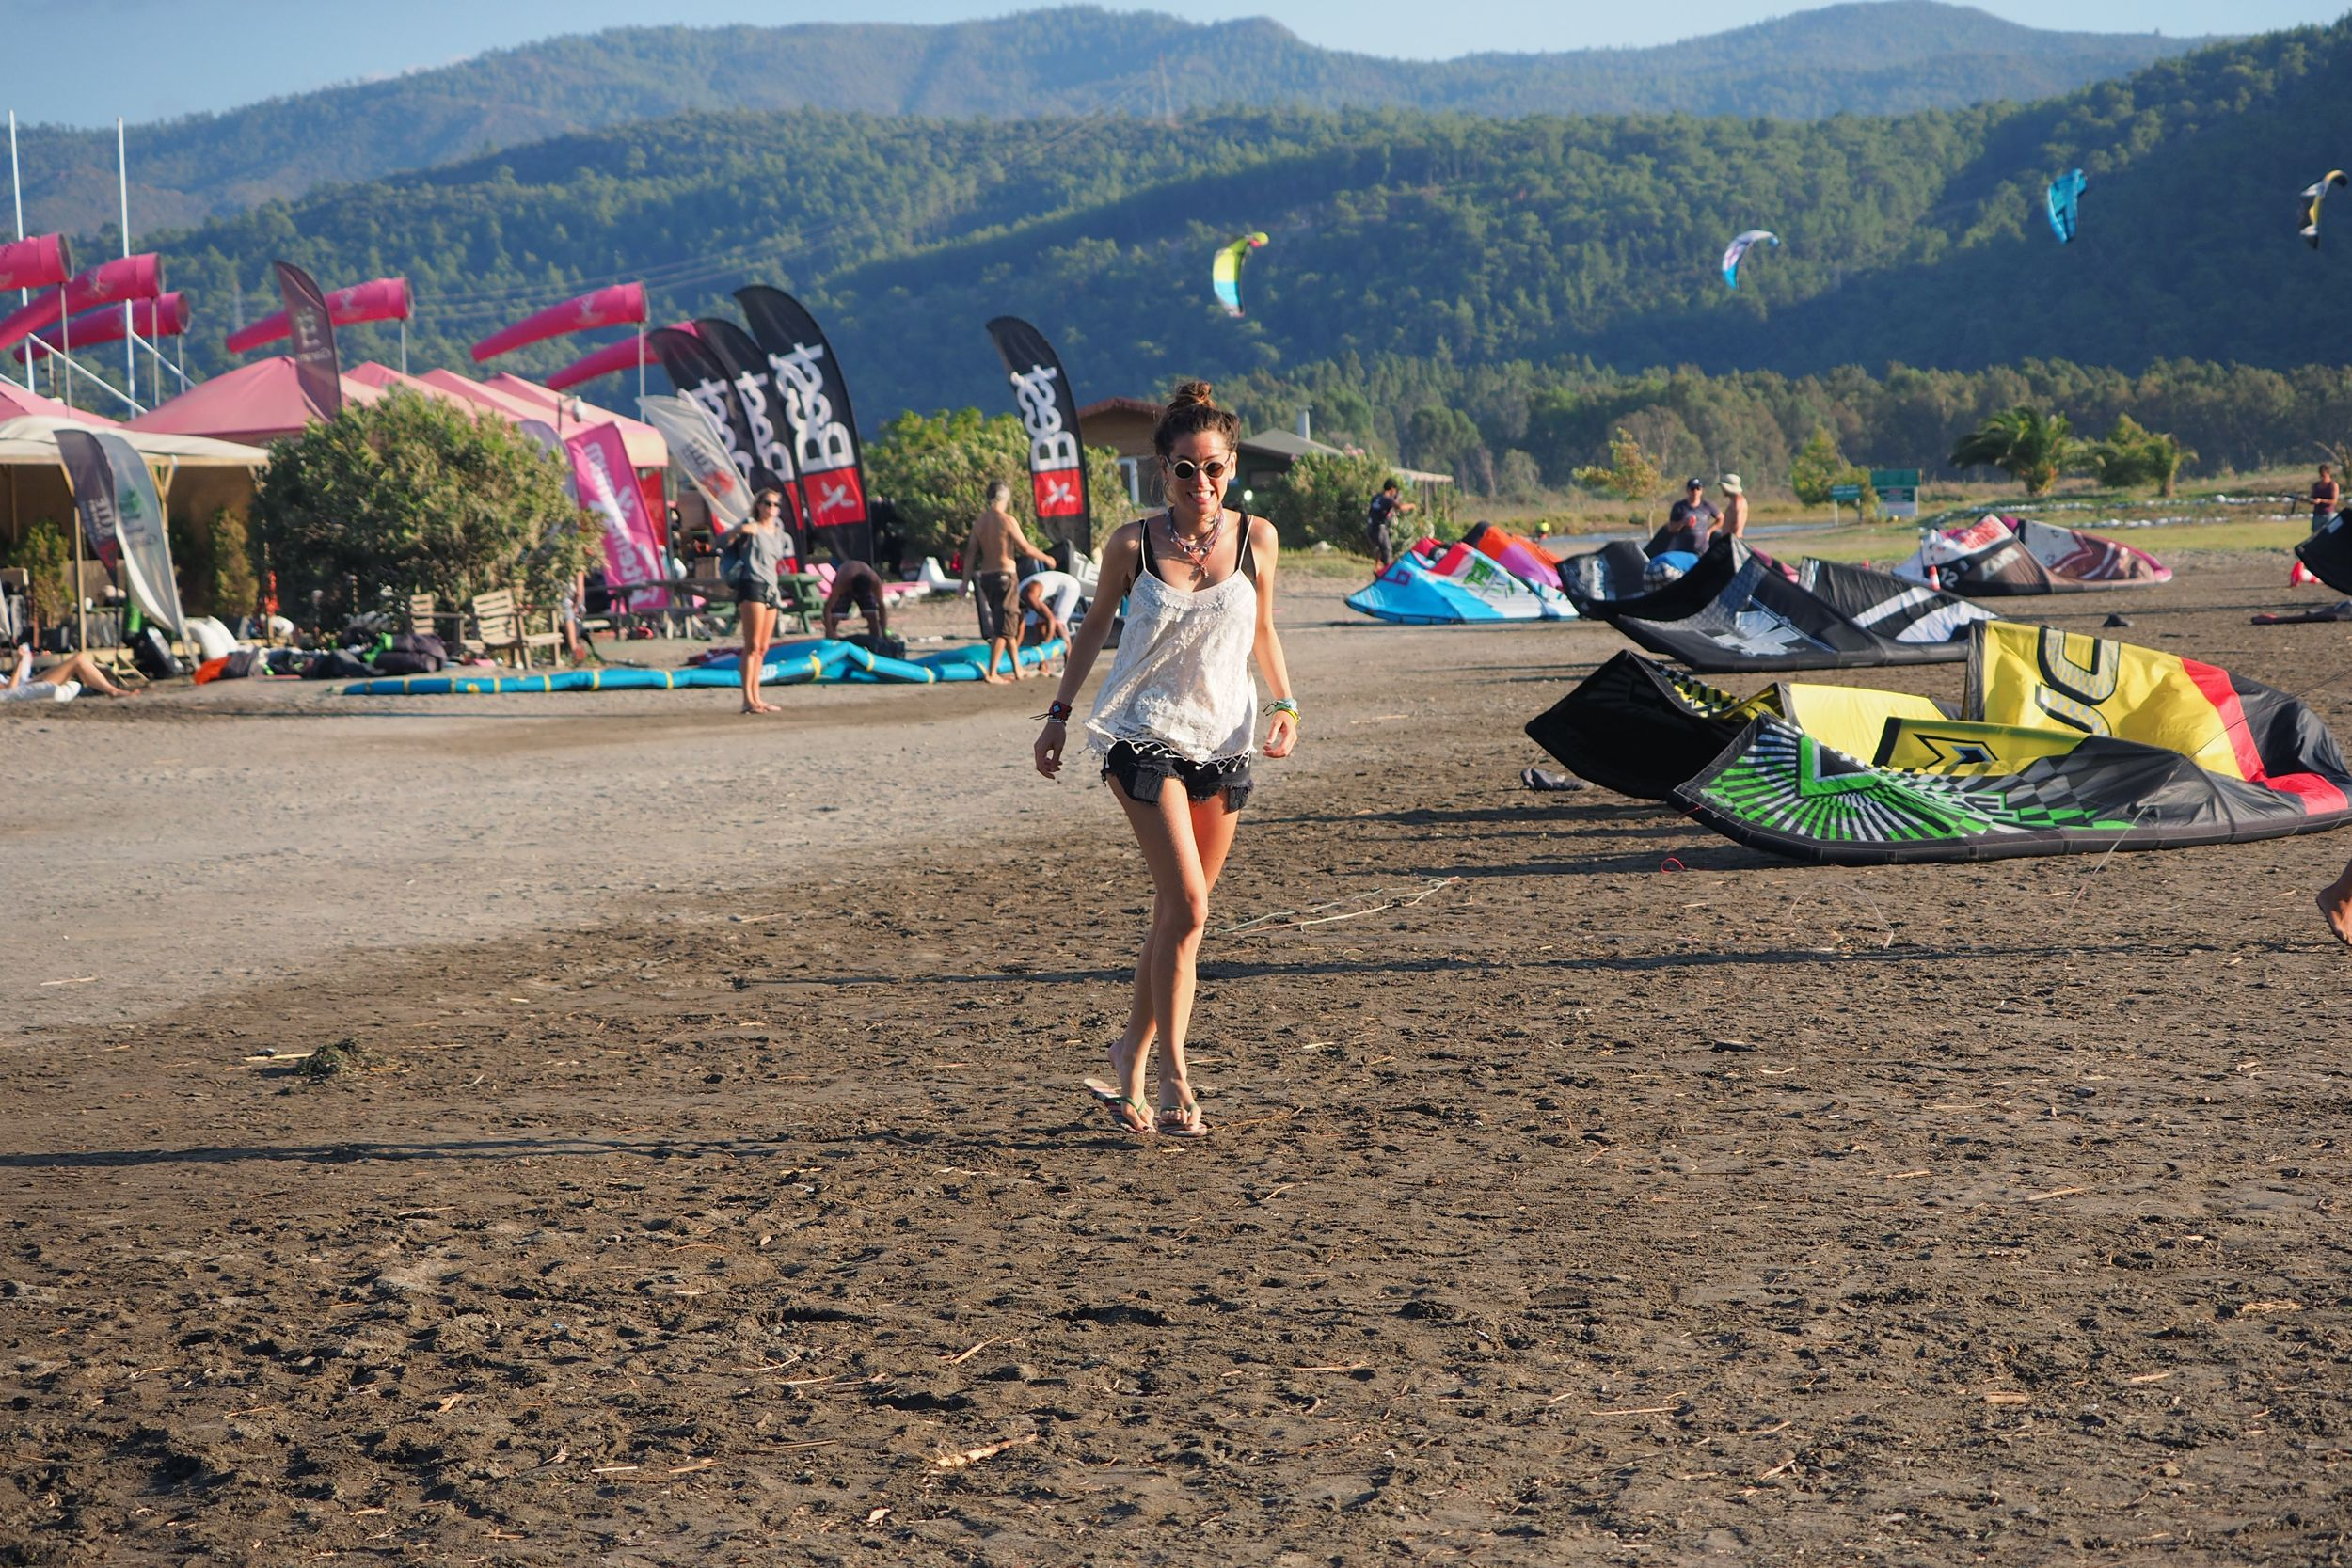 kiteboarding, kitesurfing, kiteboard, topshop, pole women,hally and son, ksubi, billur saatci, street style,